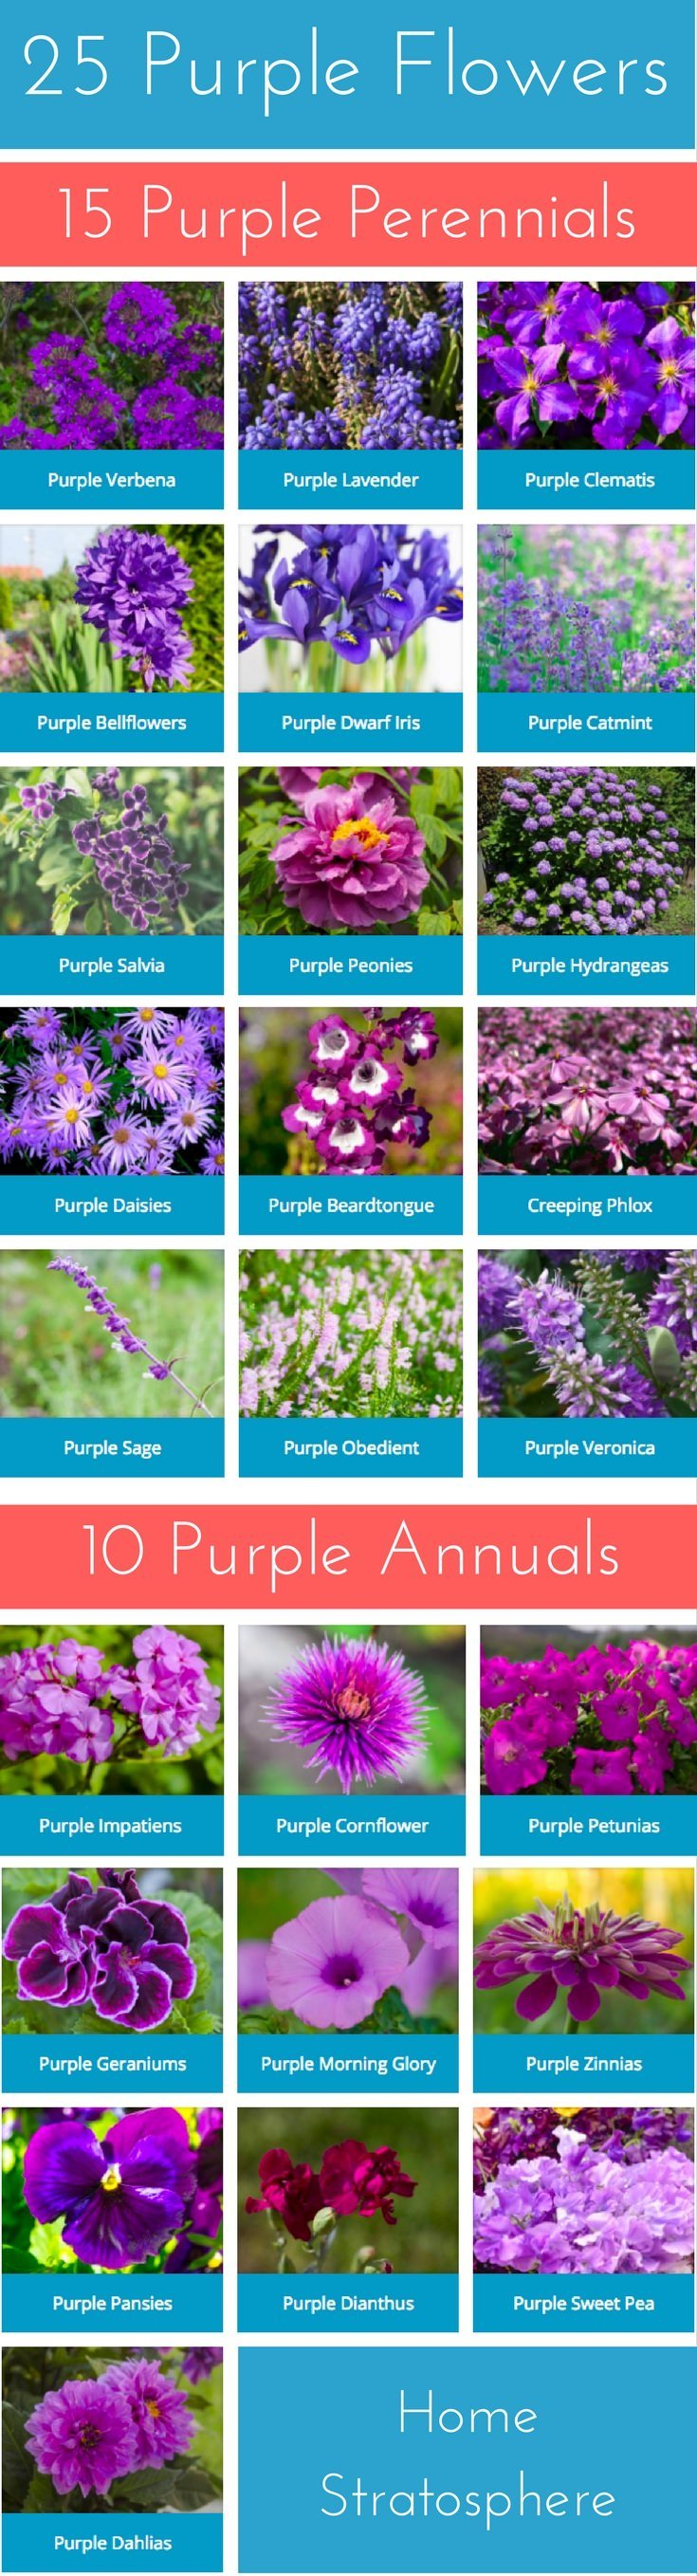 25 Purple Flower Ideas For Your Garden Pots And Planters